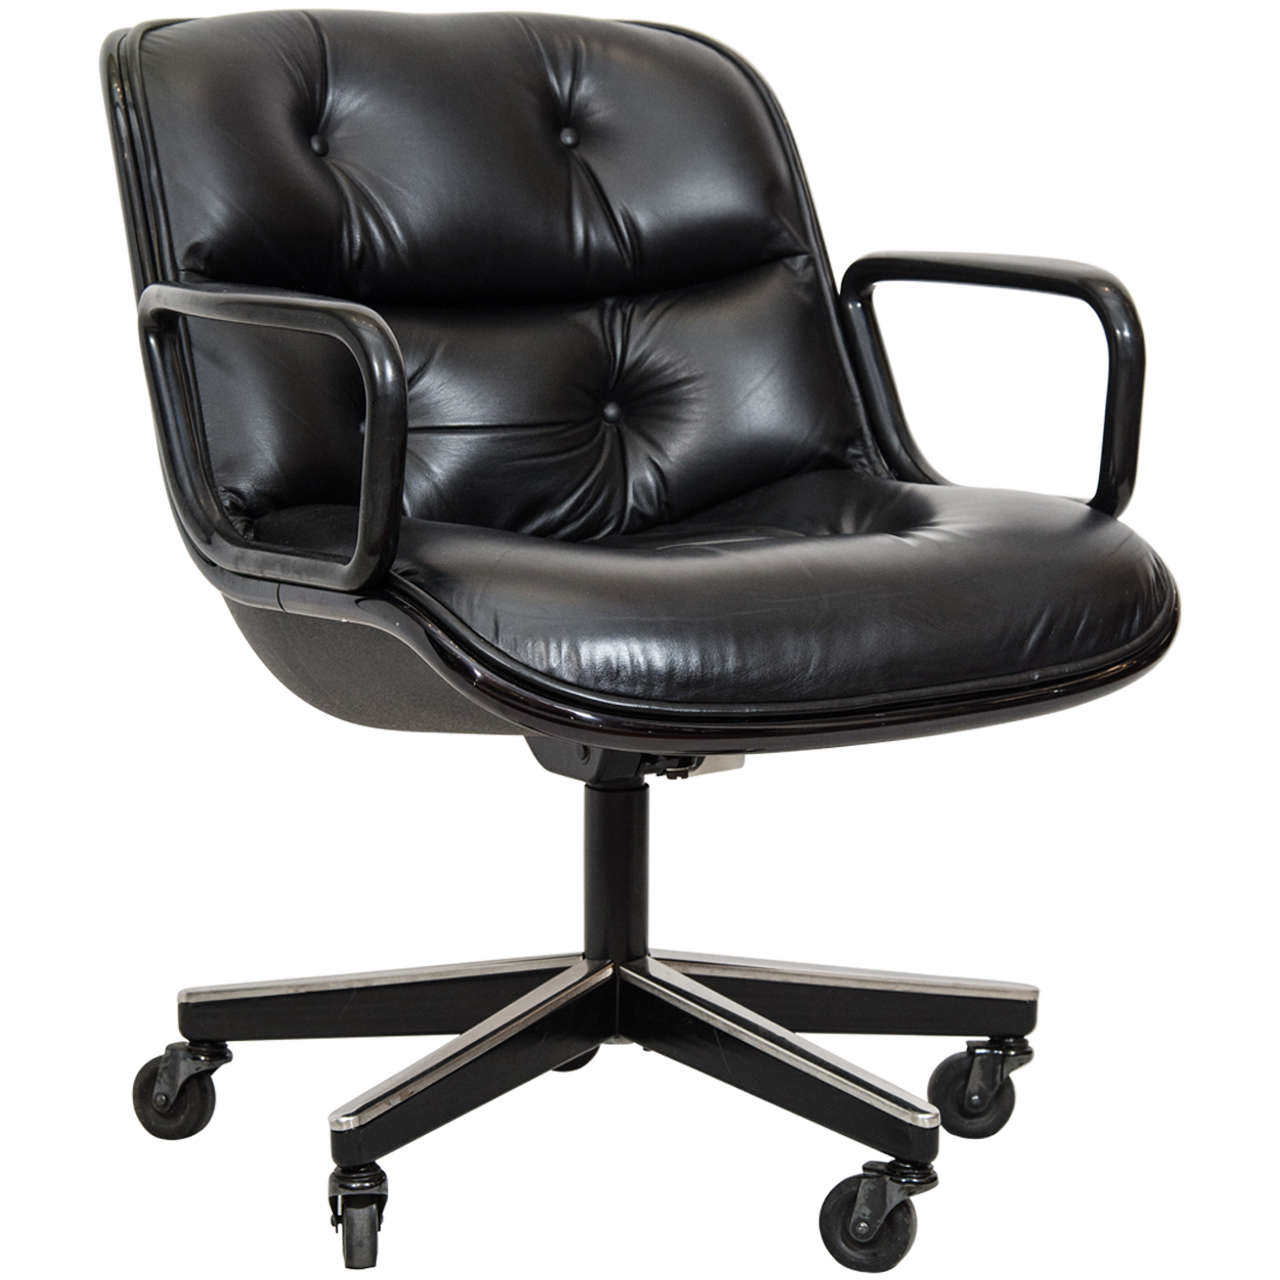 Merveilleux Charles Pollock Executive Desk Chair For Knoll For Sale